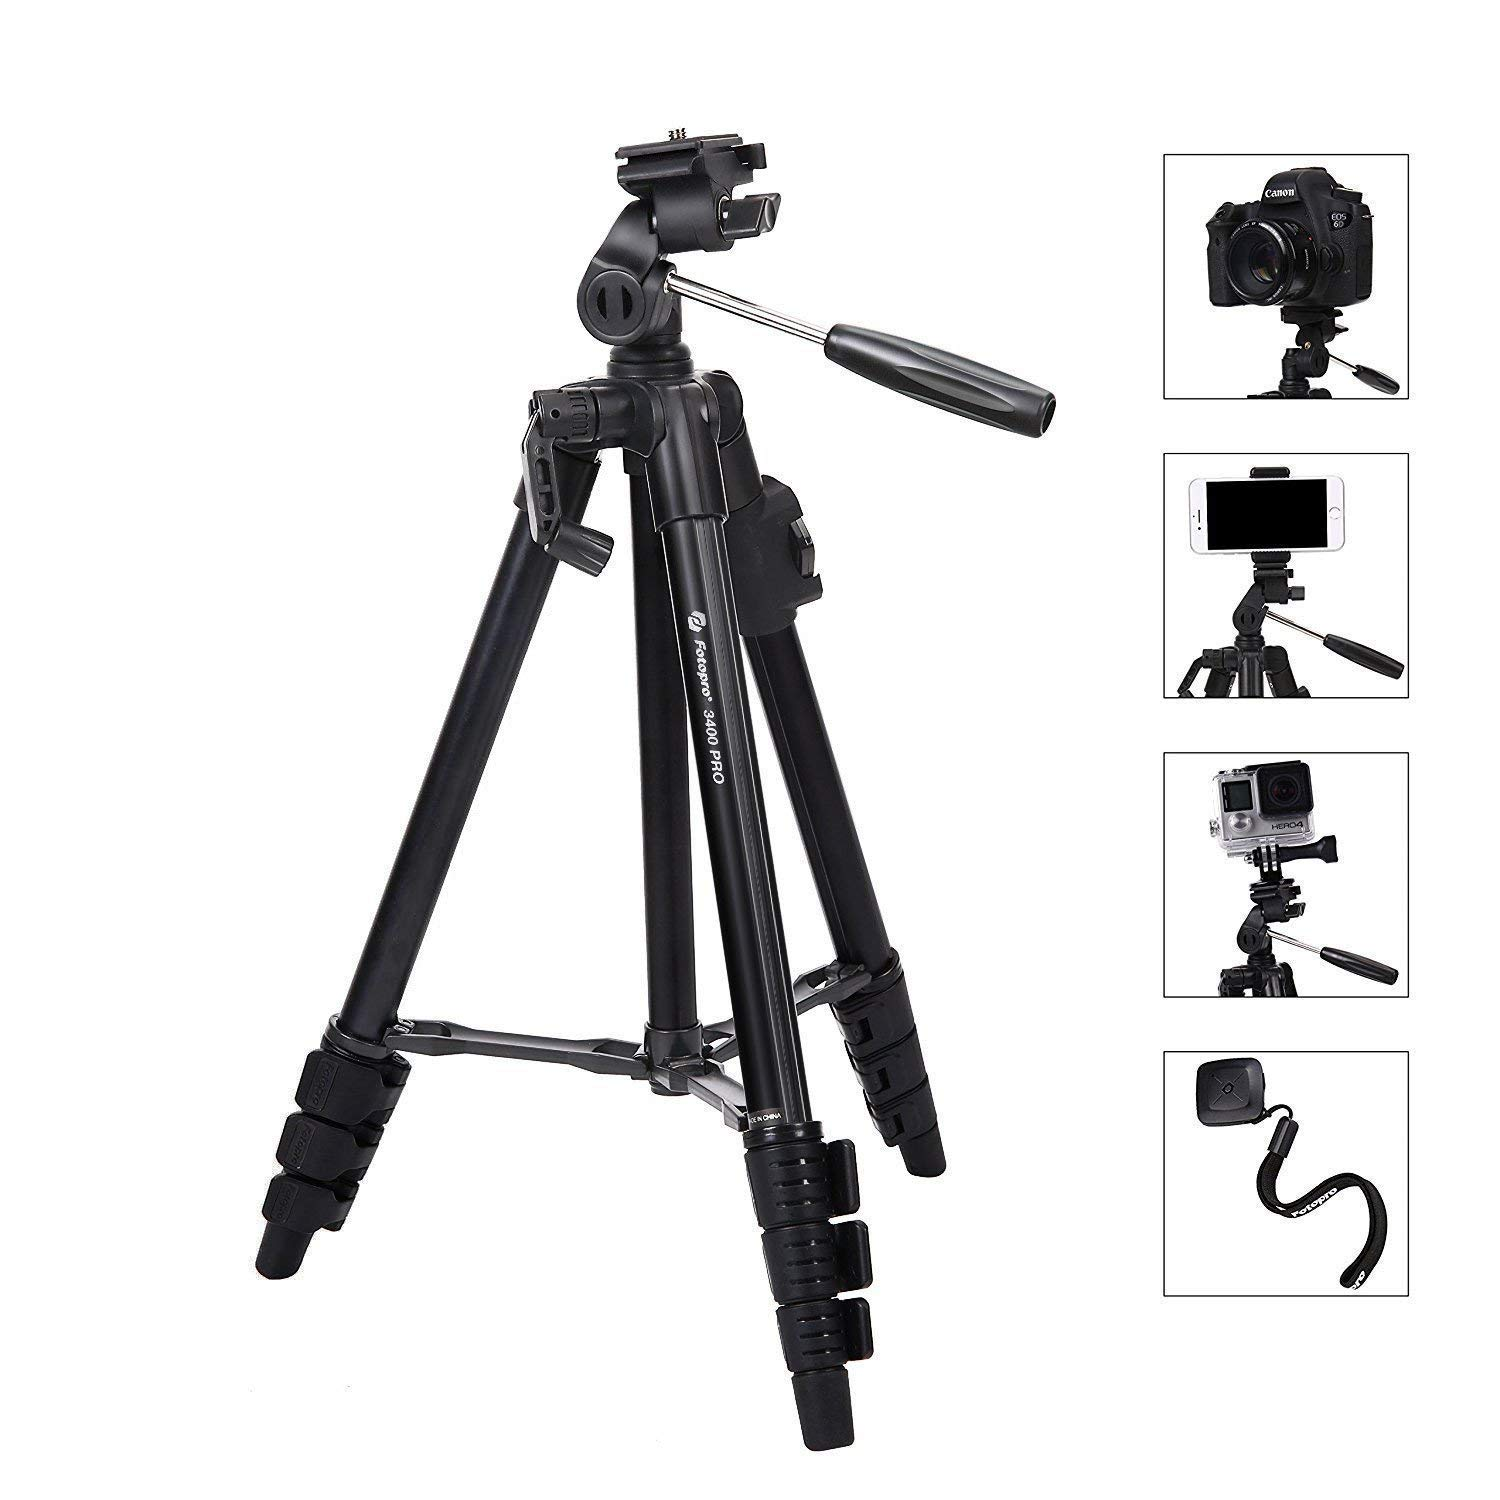 Camera Tripod, Lightweight Flexible Tripod, Fotopro 48' Tripod with Wireless Remote for DSLR Cameras, Smartphones and Gopro, Quick Release Plate, Tripod Bag for Camera, Smartphone and Gopro,Black Fotopro 48 Tripod with Wireless Remote for DSLR Cameras